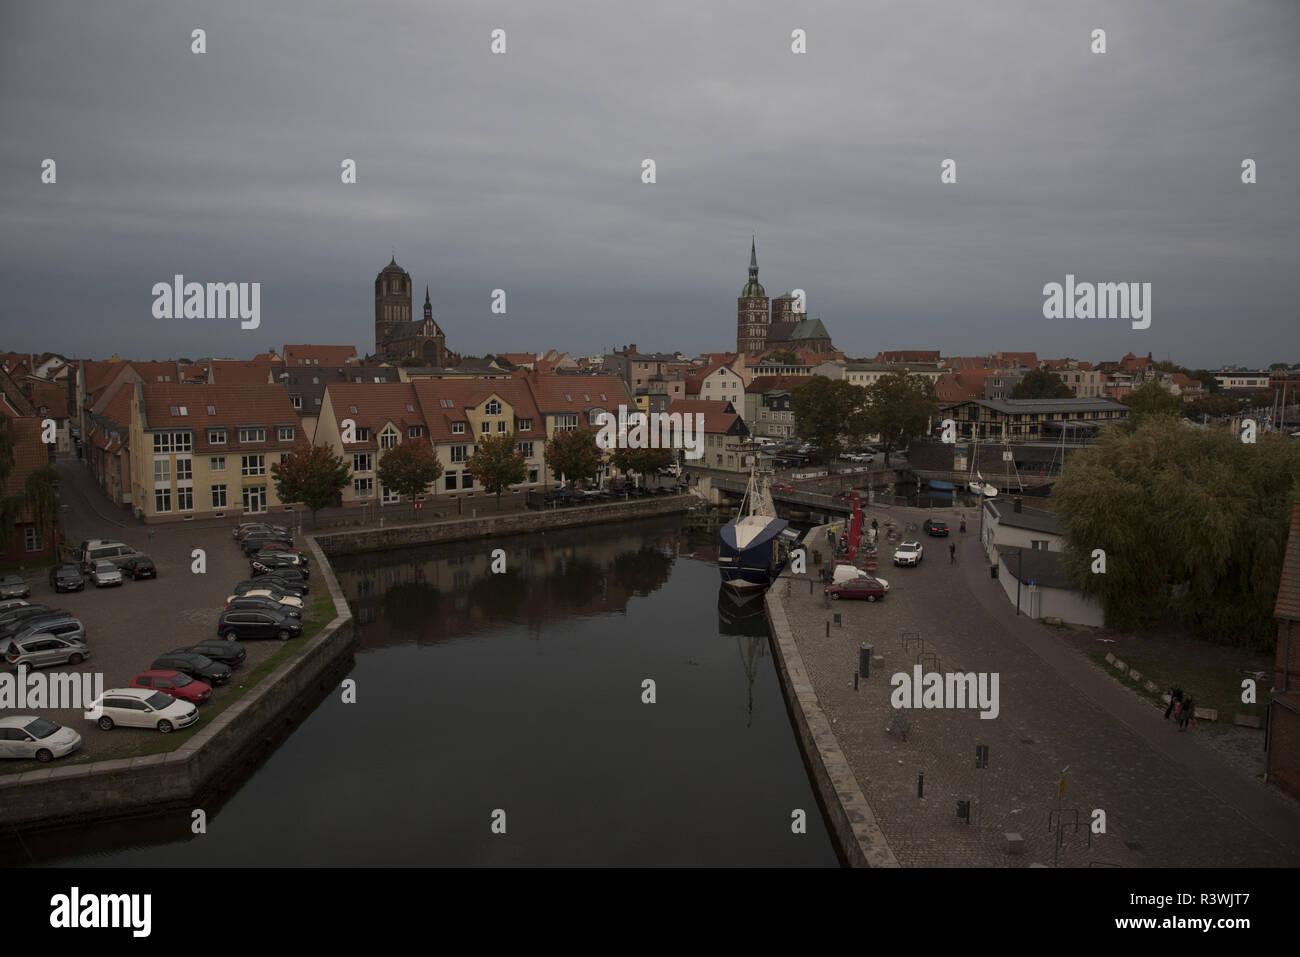 Stralsund is a Hanseatic town in Mecklenbug-Vorpommern in  Germany with some famous churches. Stock Photo